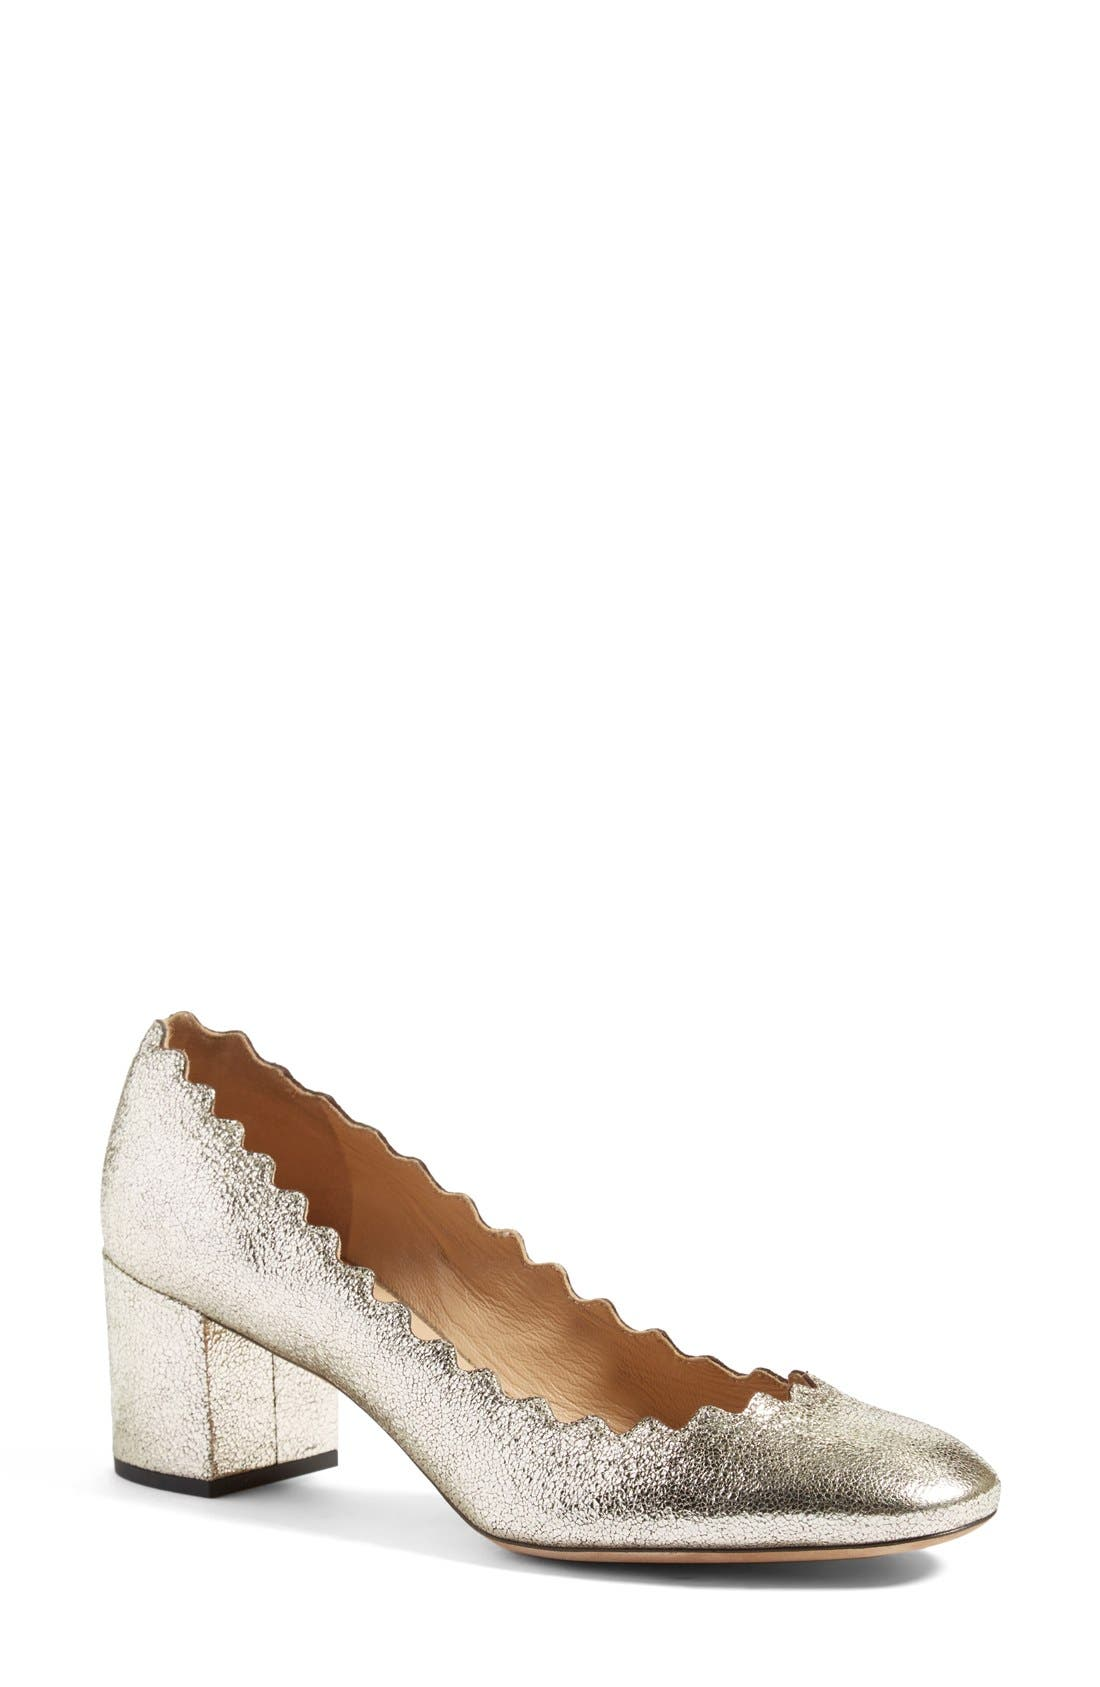 Chloé 'Lauren' Scalloped Pump (Women)